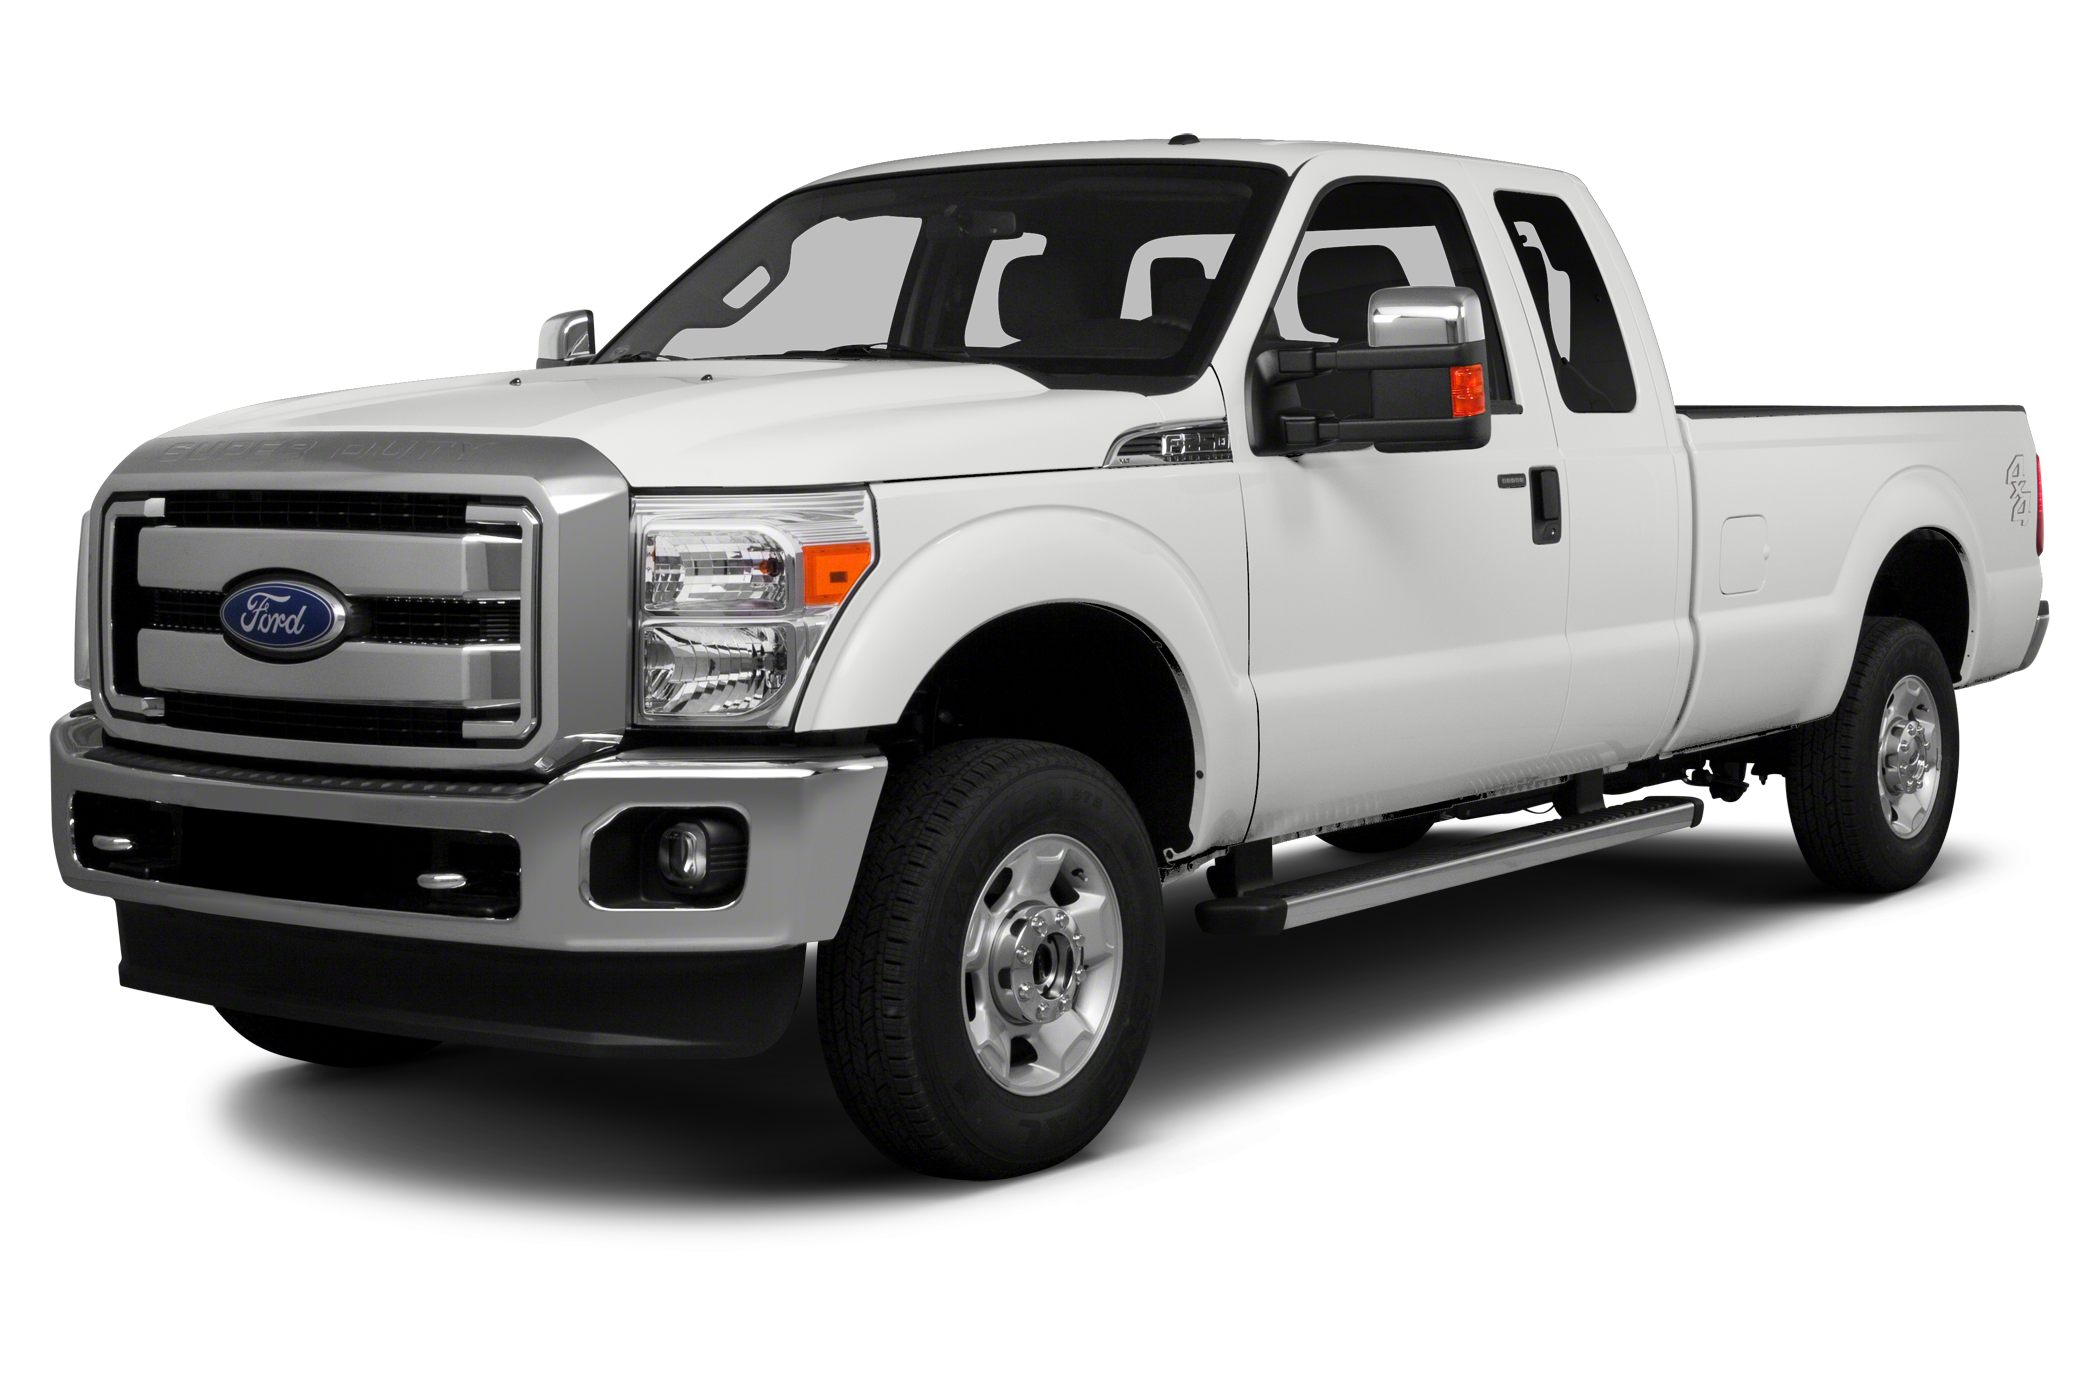 2015 Ford F250 Lariat Crew Cab Pickup for sale in Austin for $57,950 with 680 miles